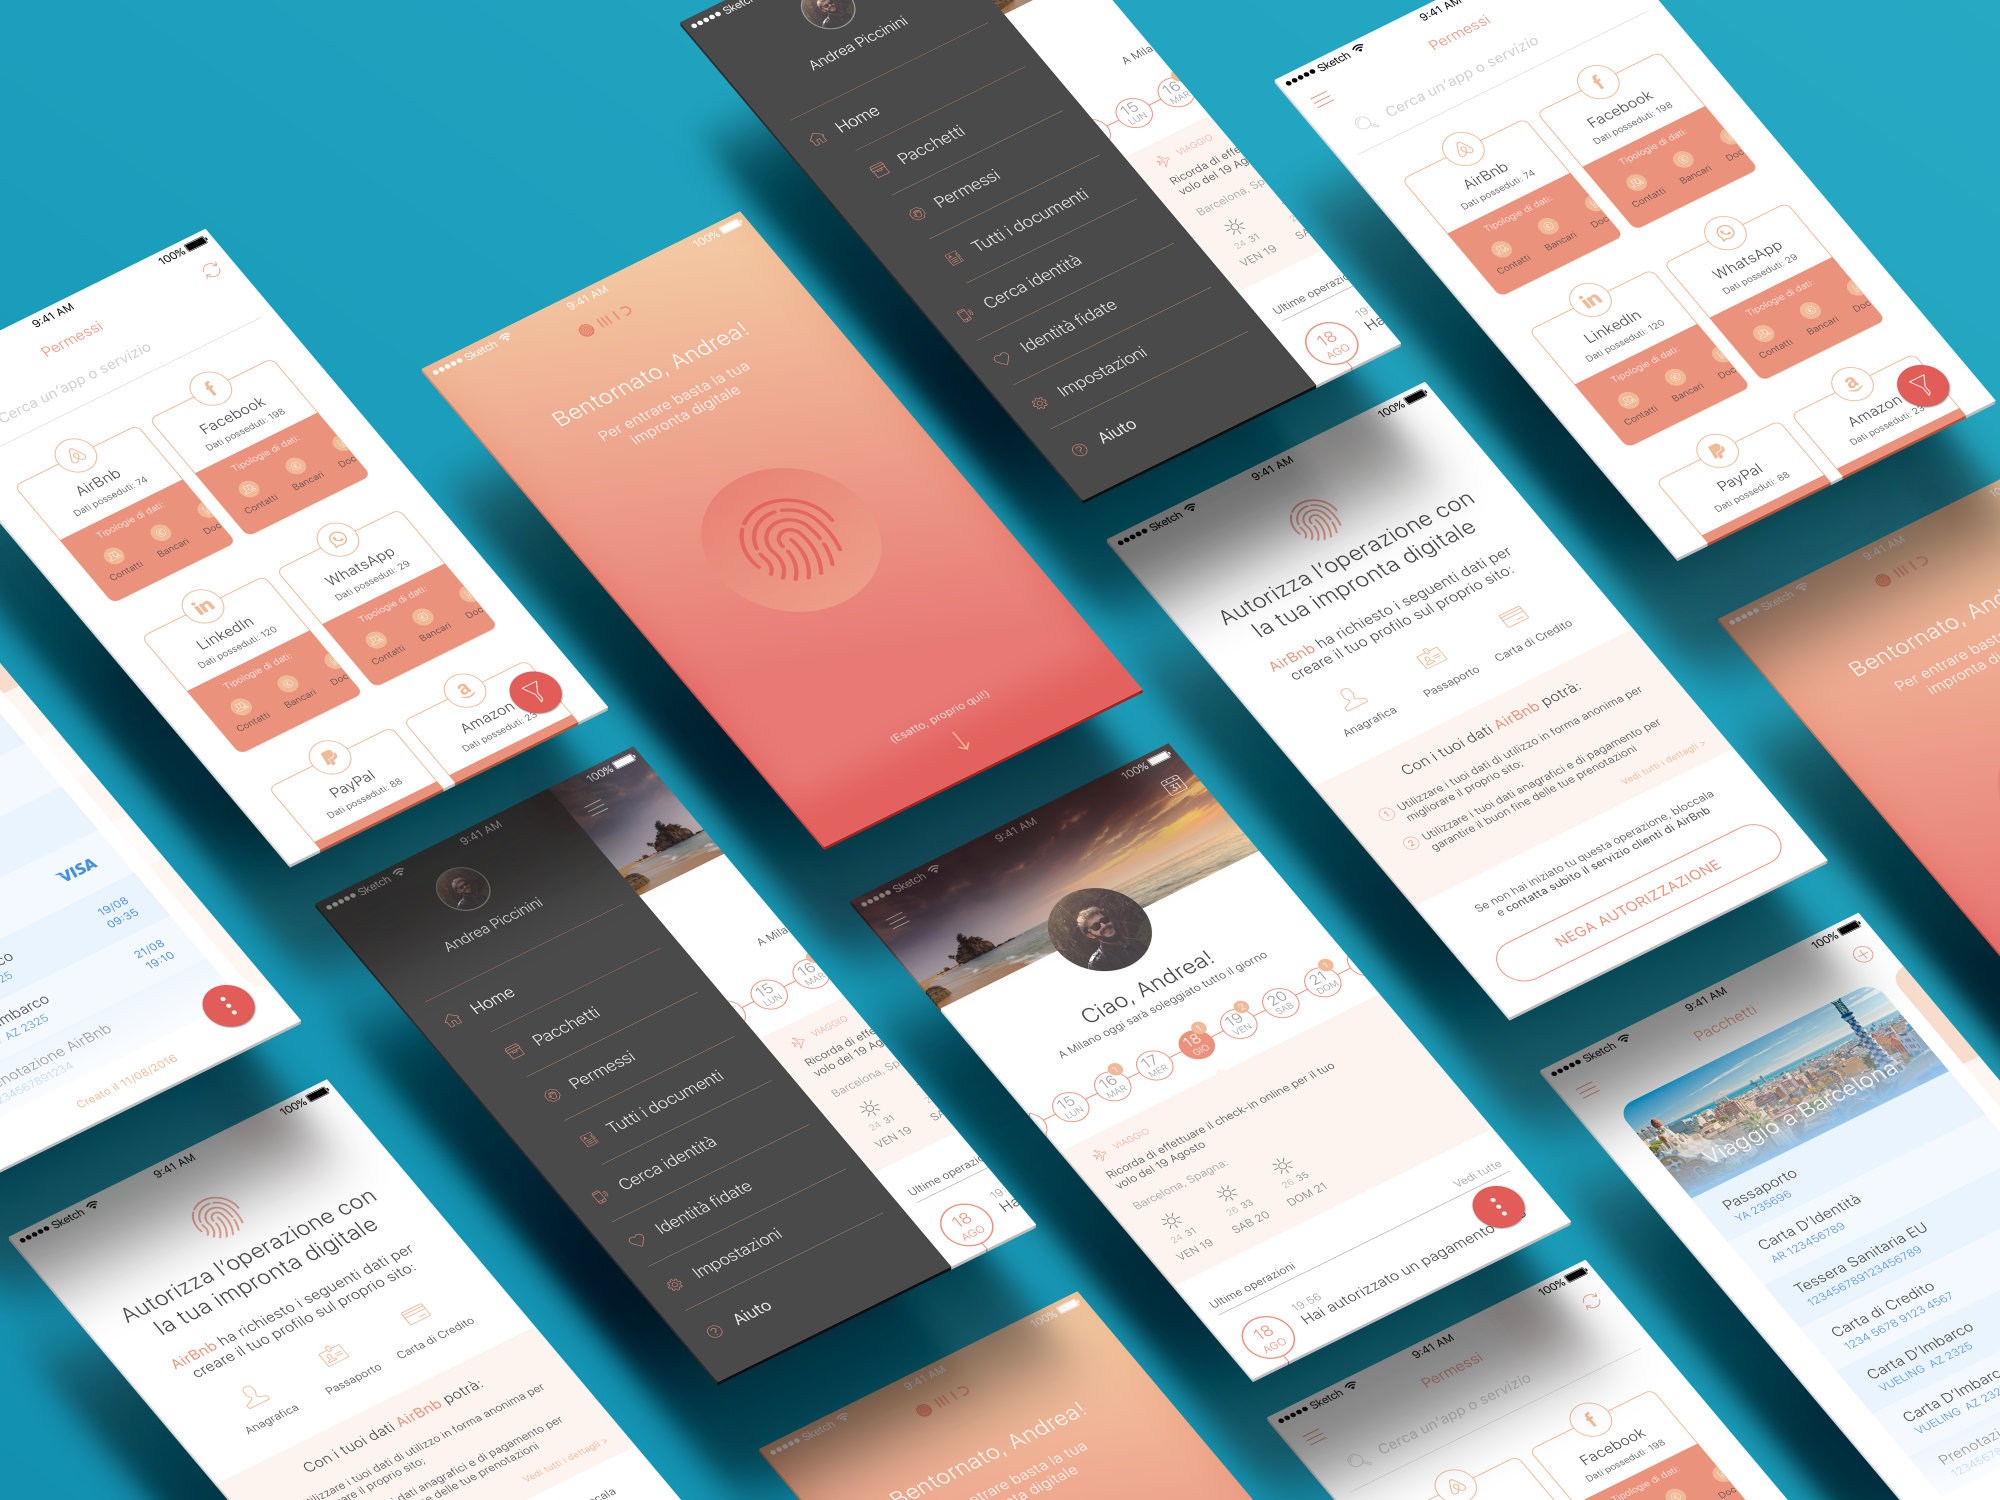 Perspective-App-Screens-Mock-Up-16